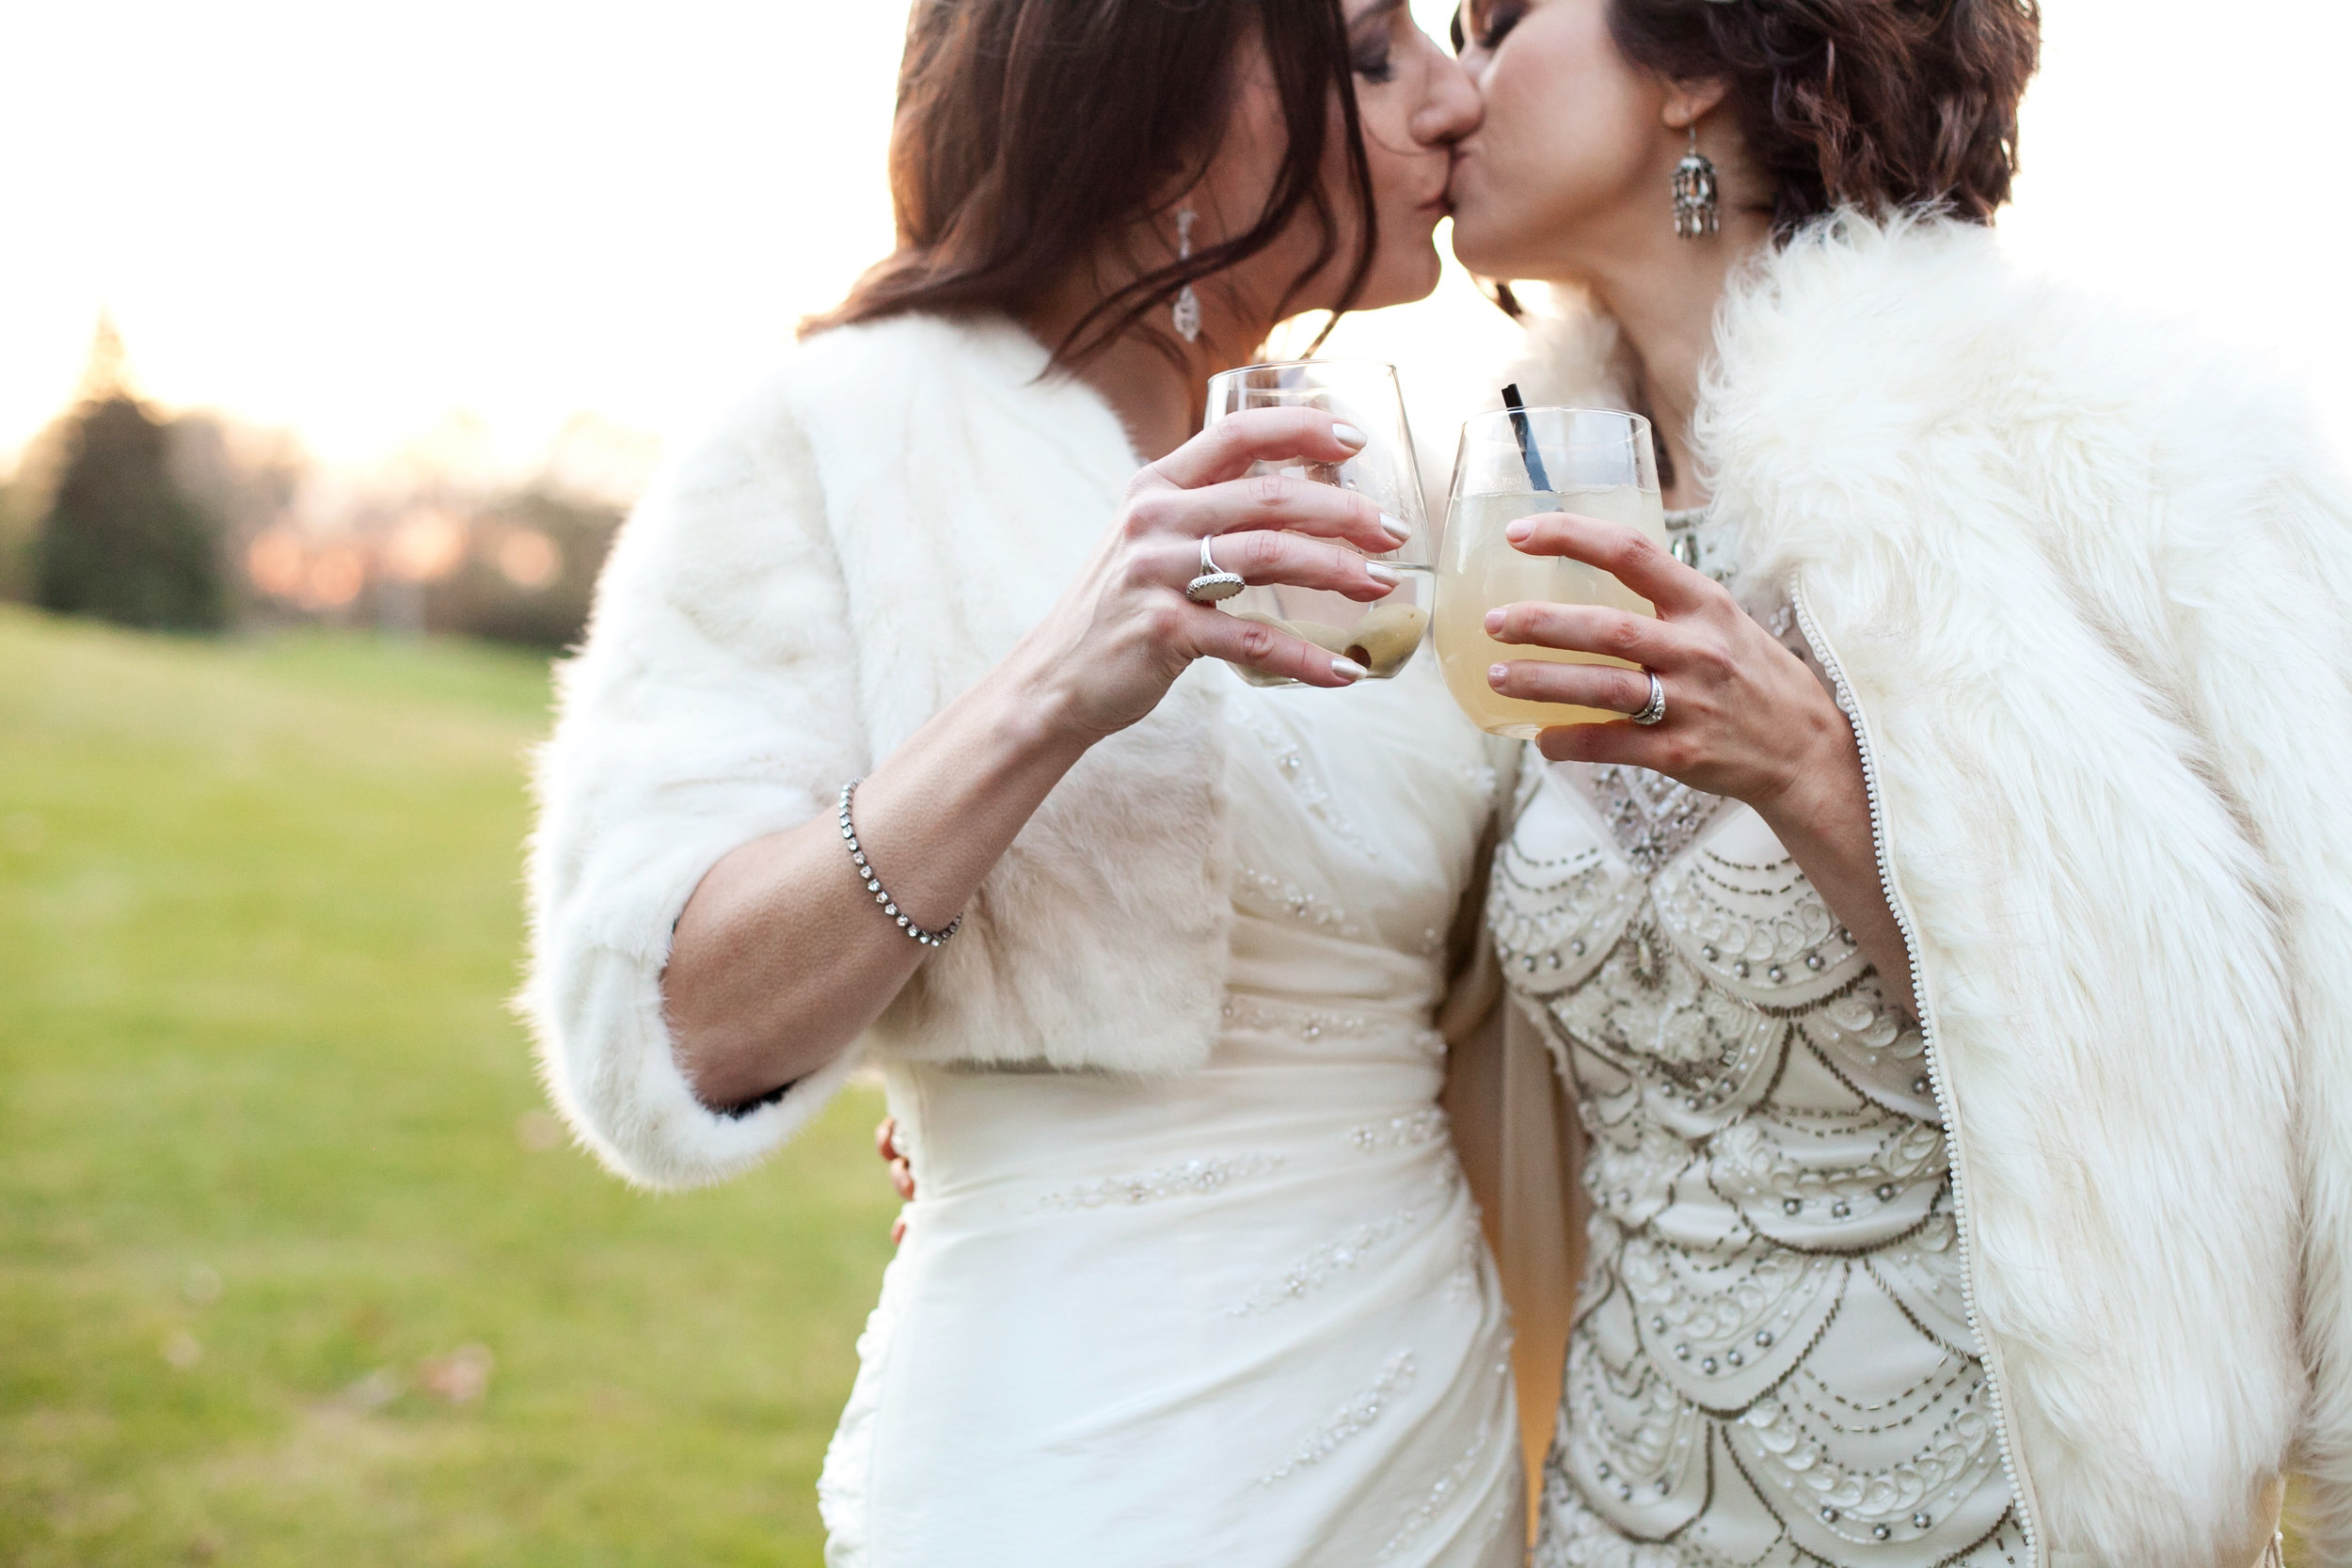 41  two brides two brides poses candid wedding shots brides with fur coats colorful bouquets spring bouquets brides kissing Life Design Events.jpg